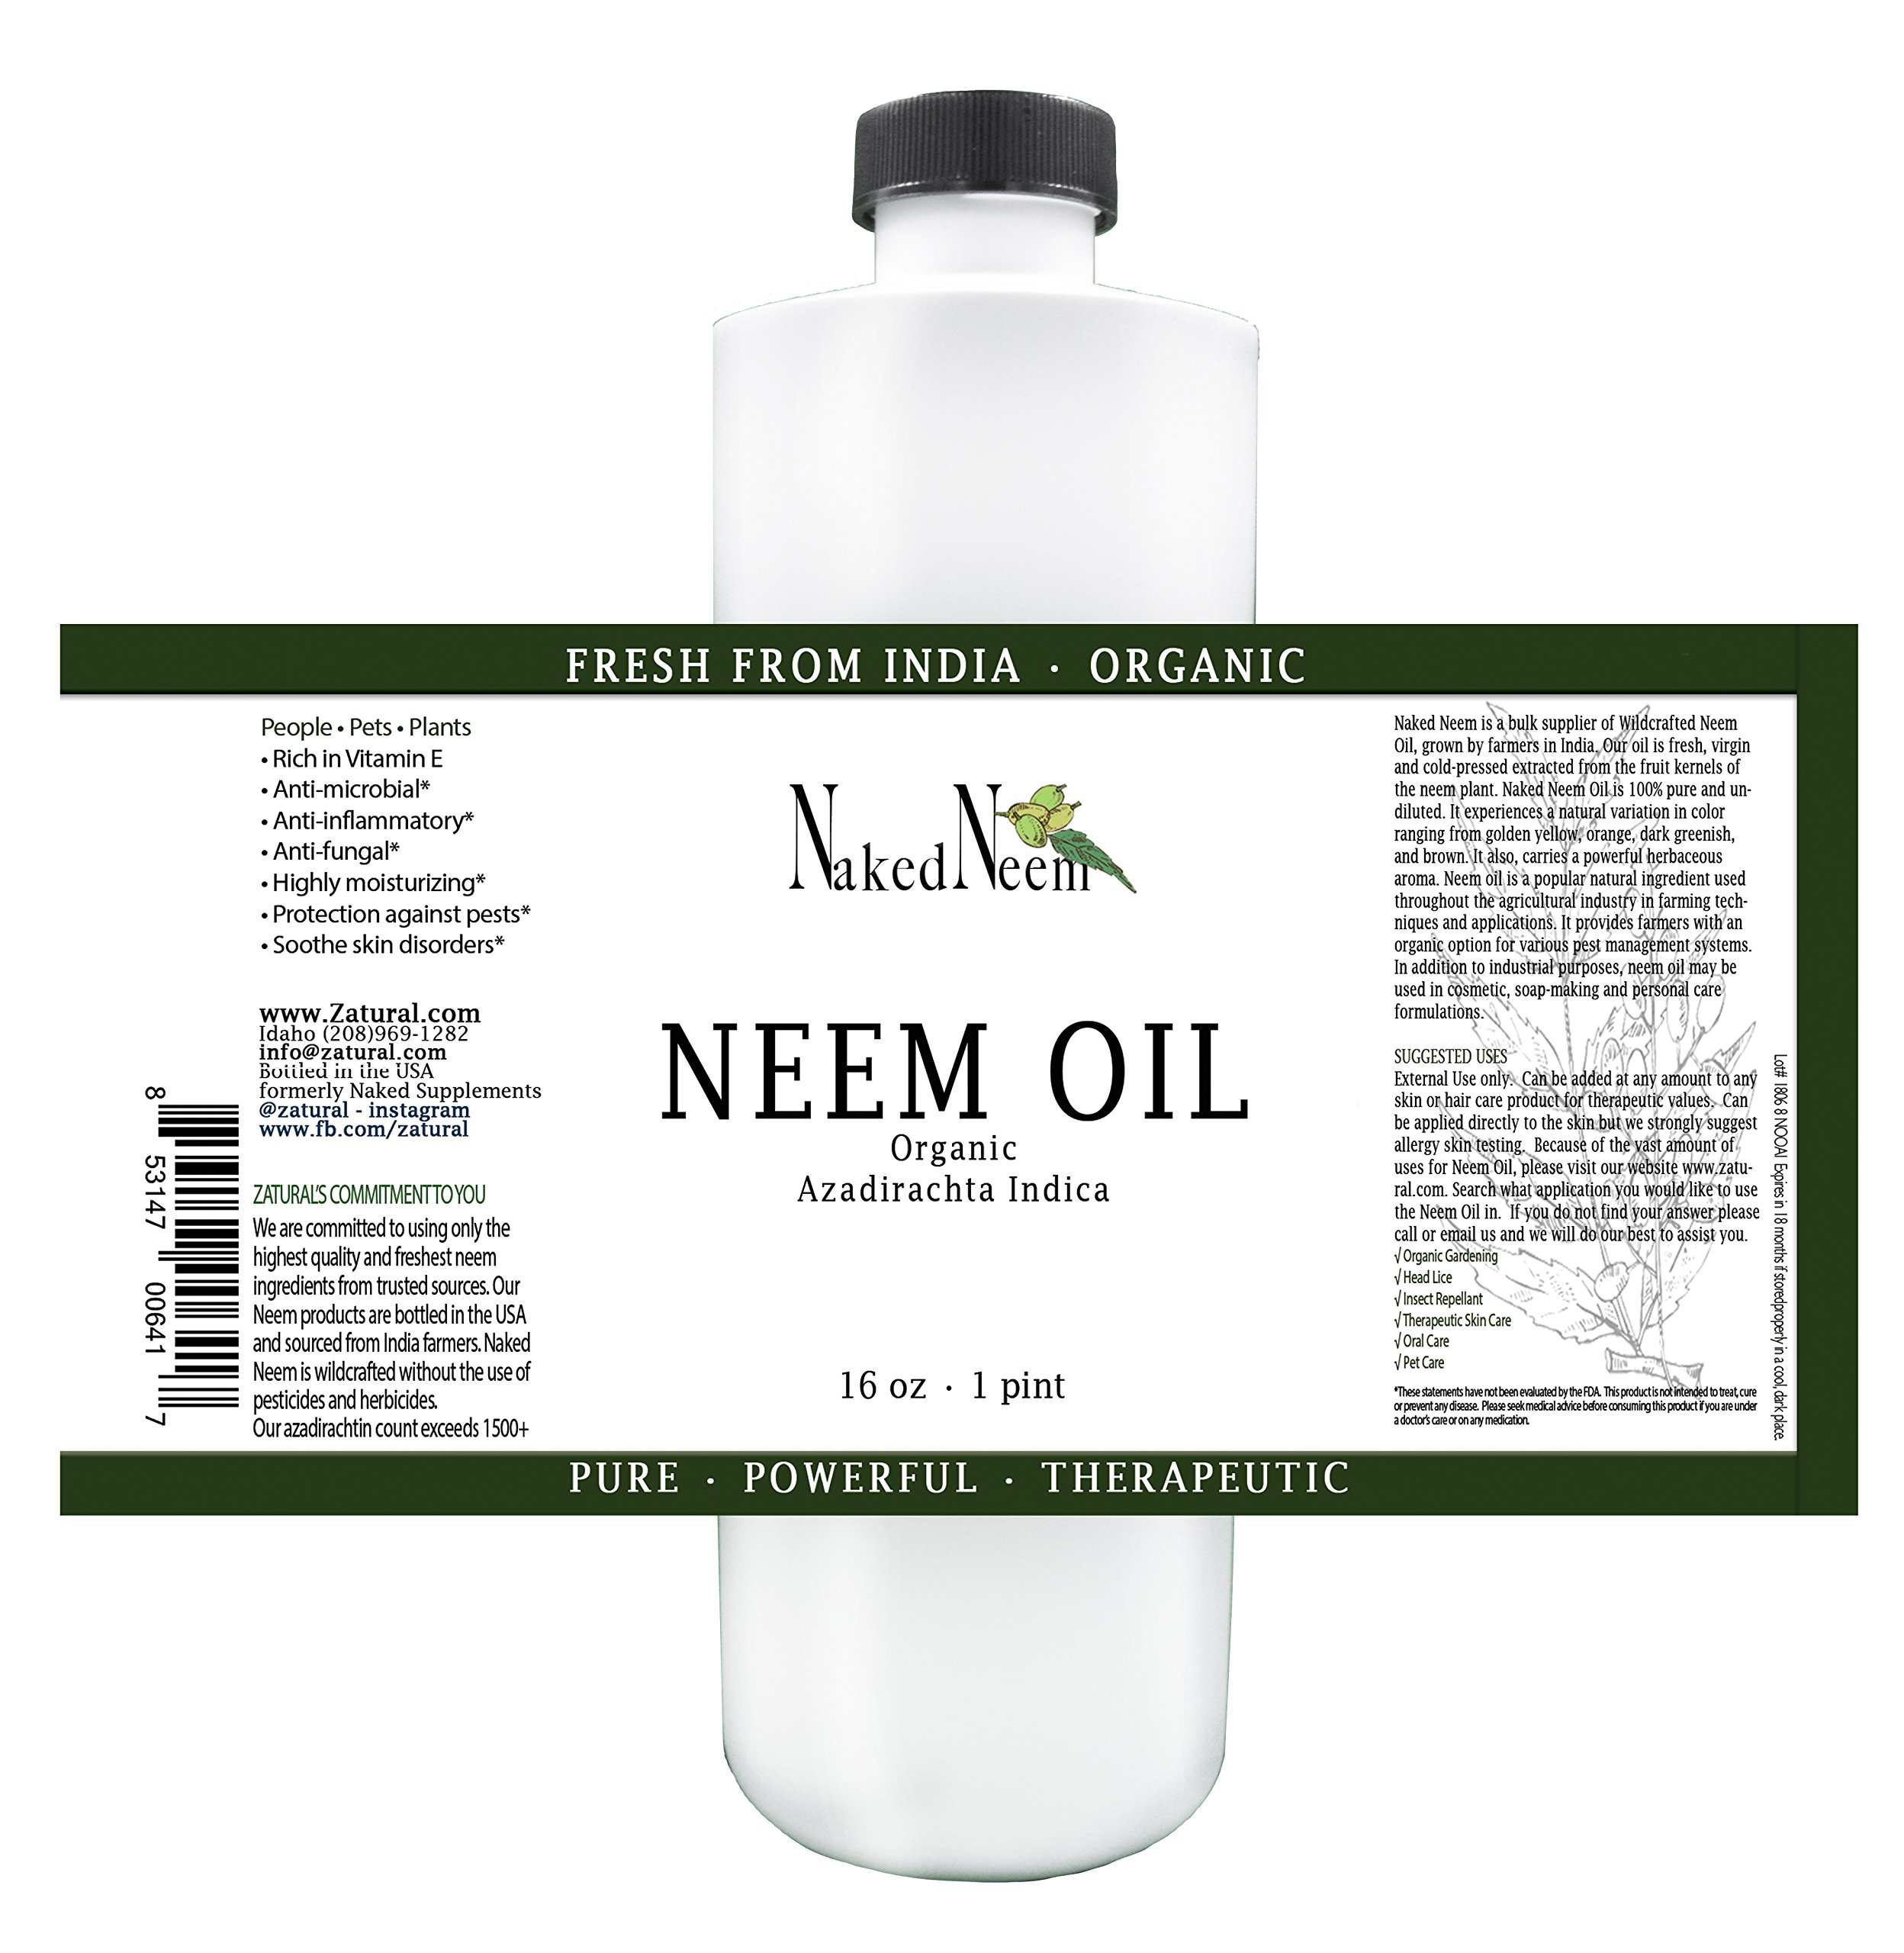 Organic Neem Oil (16 oz) 100% Pure Cold Press, Unrefined_6 Sizes, Best Prices (NEW LOOK)